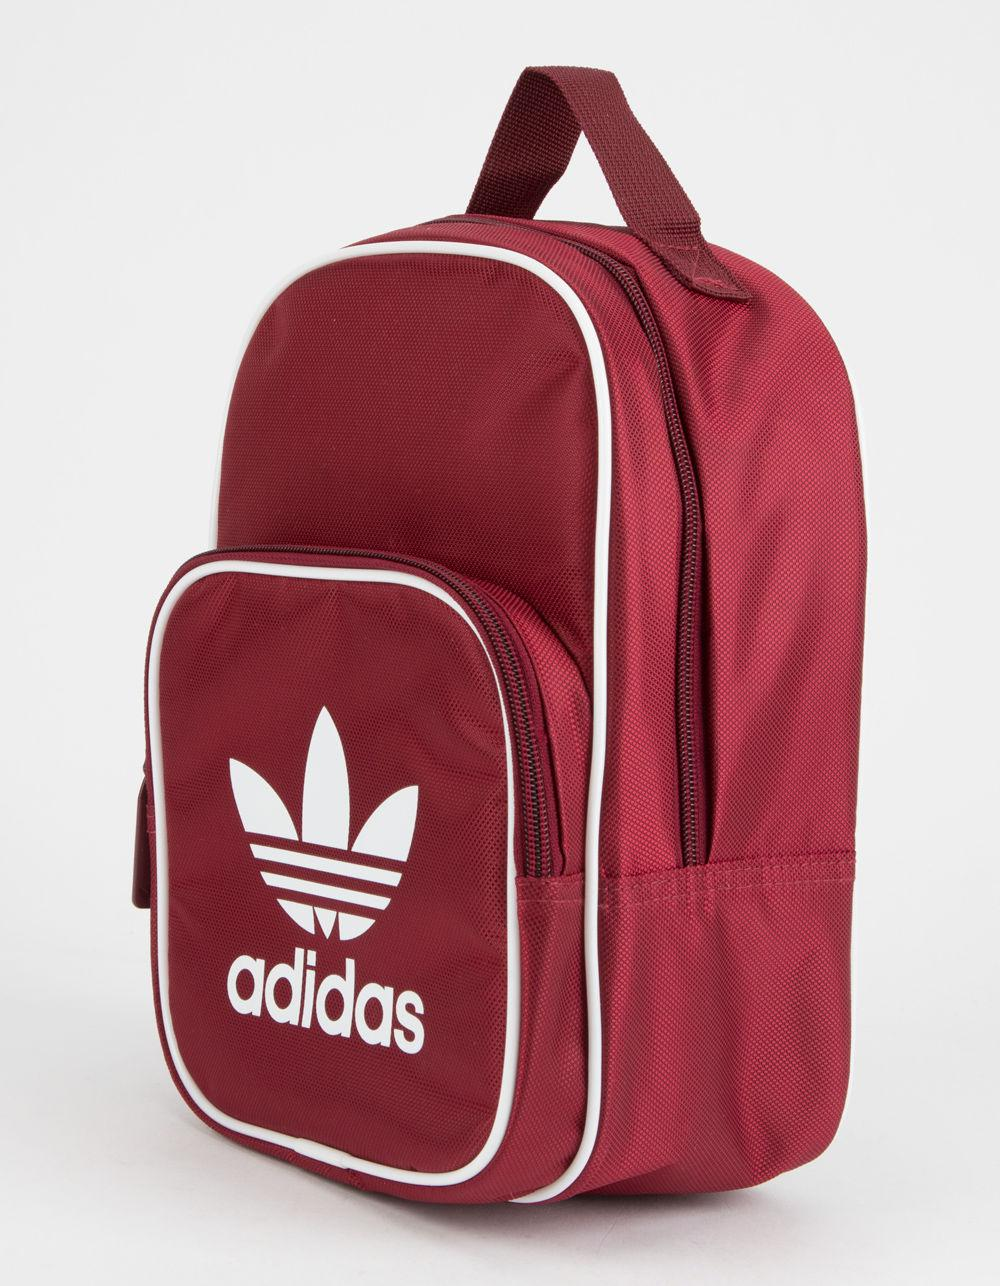 821c7e87a524 Lyst - adidas Originals Santiago Burgundy Lunch Bag in Red - Save 70%